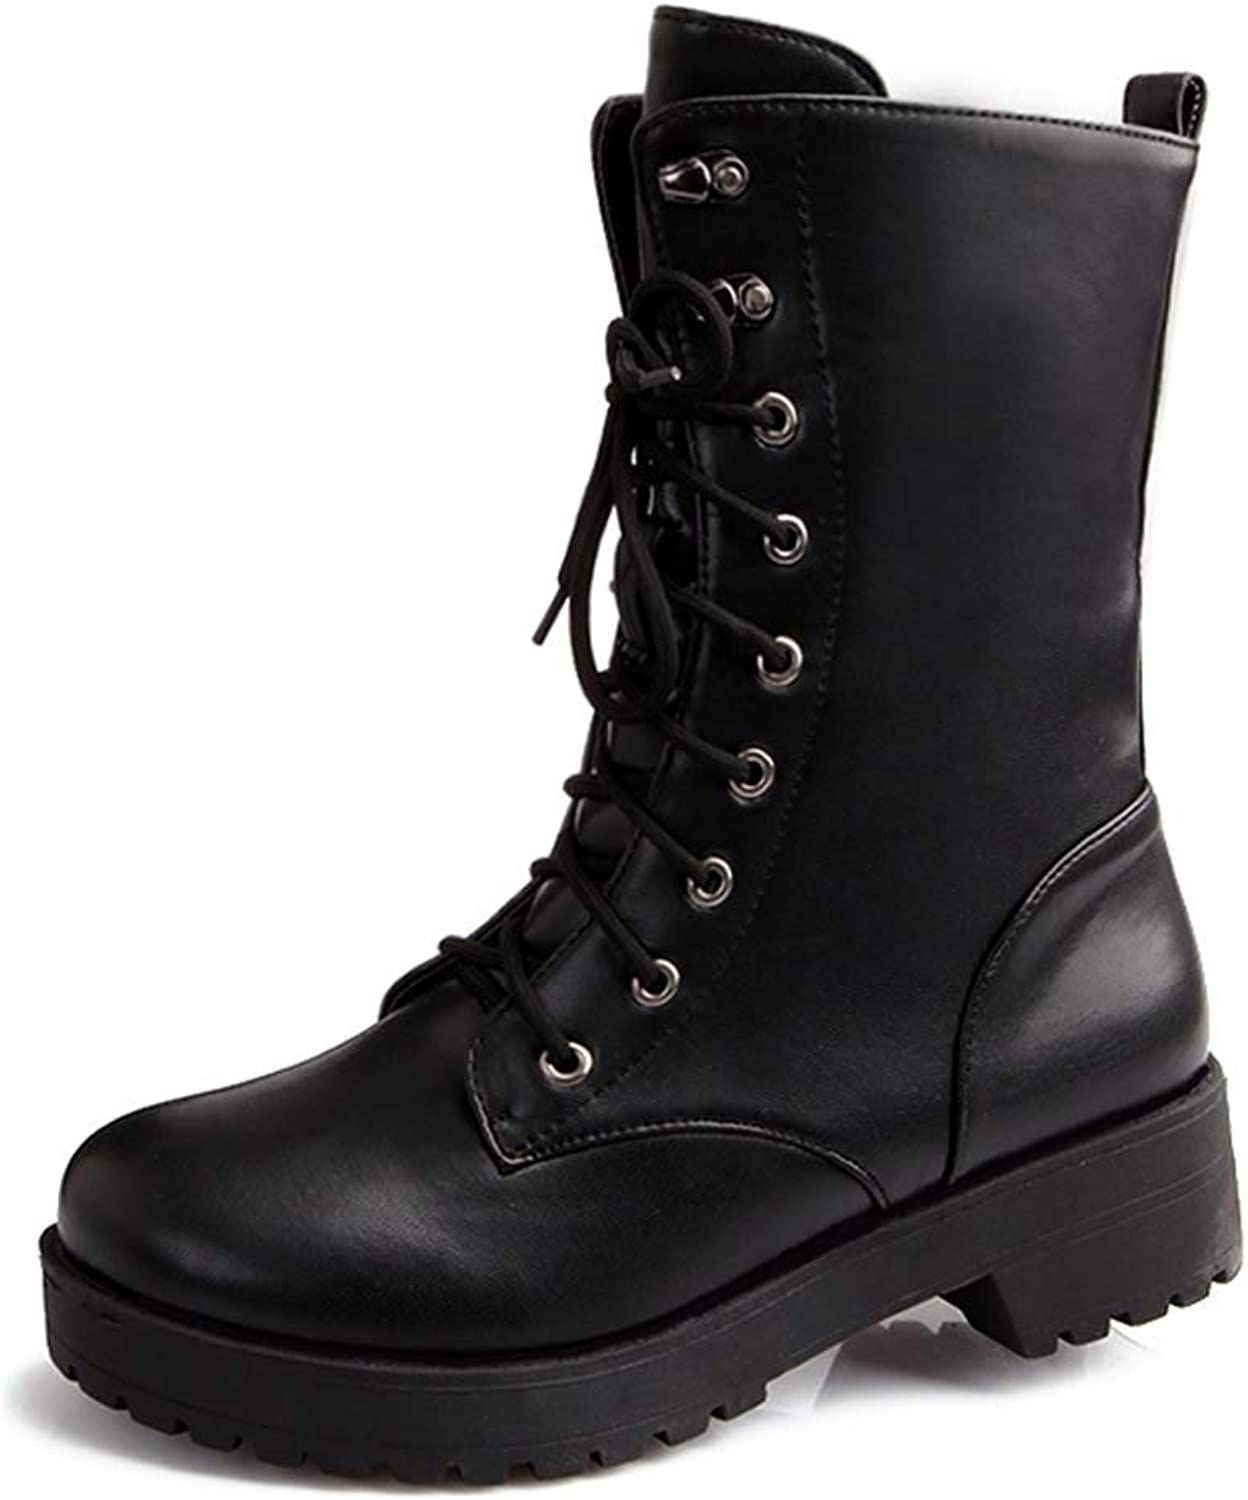 T-JULY Autumn and Winter Lace Up Mid Calf Boots Women Chunky Heel Round Toe Motorcycle Low Heel Boots Large Size 34-43